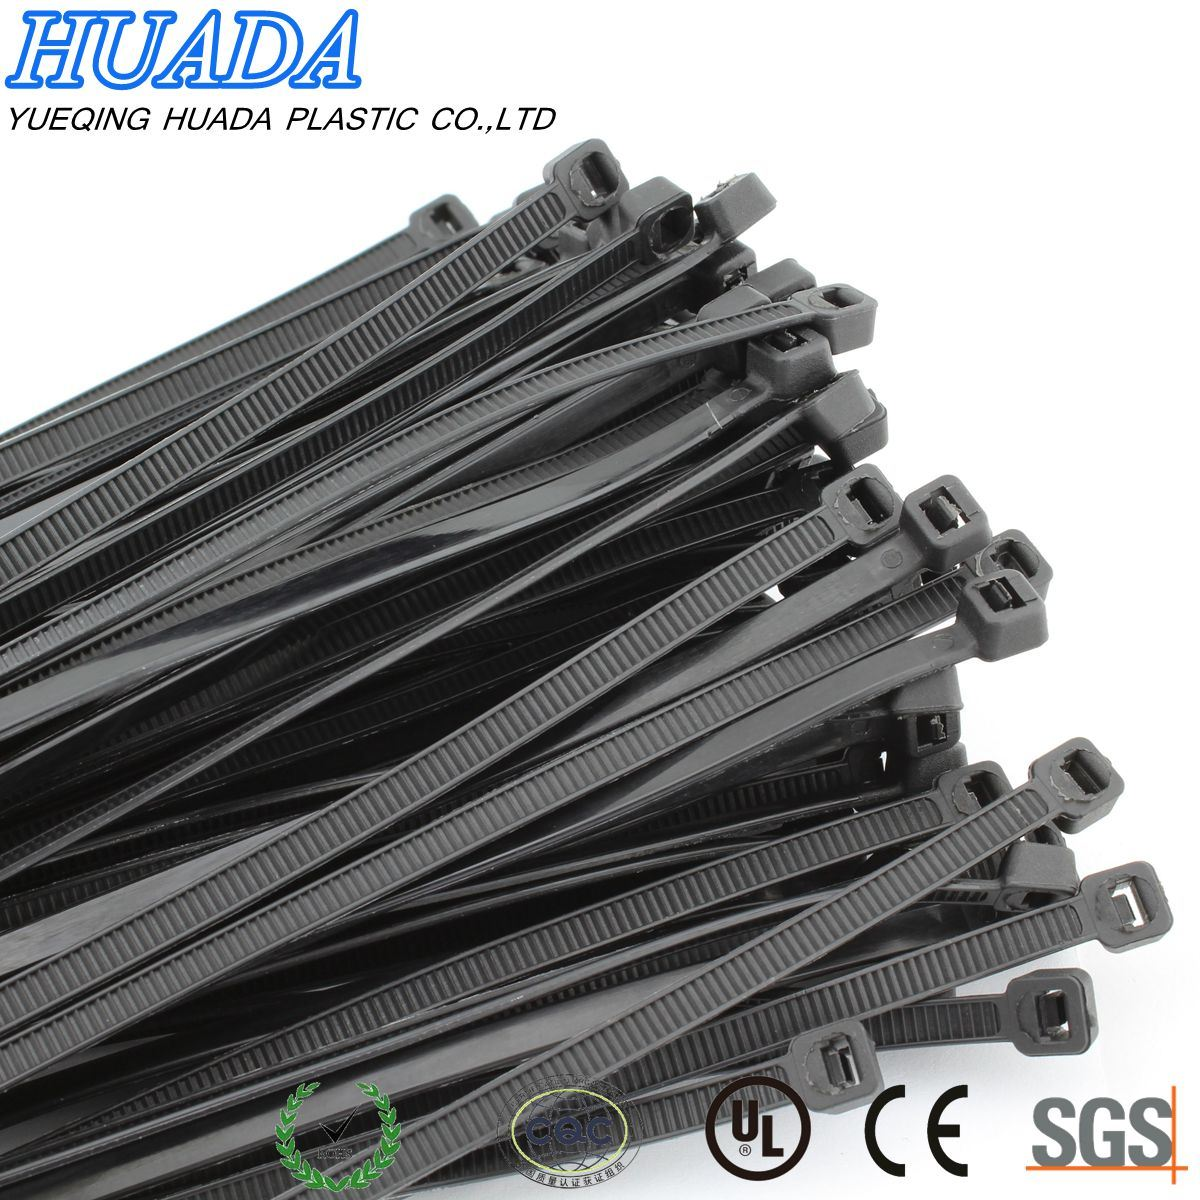 UV Resistant Self Locking Nylon Soft Cable Tie/Tie Wrap/Zip Tie/